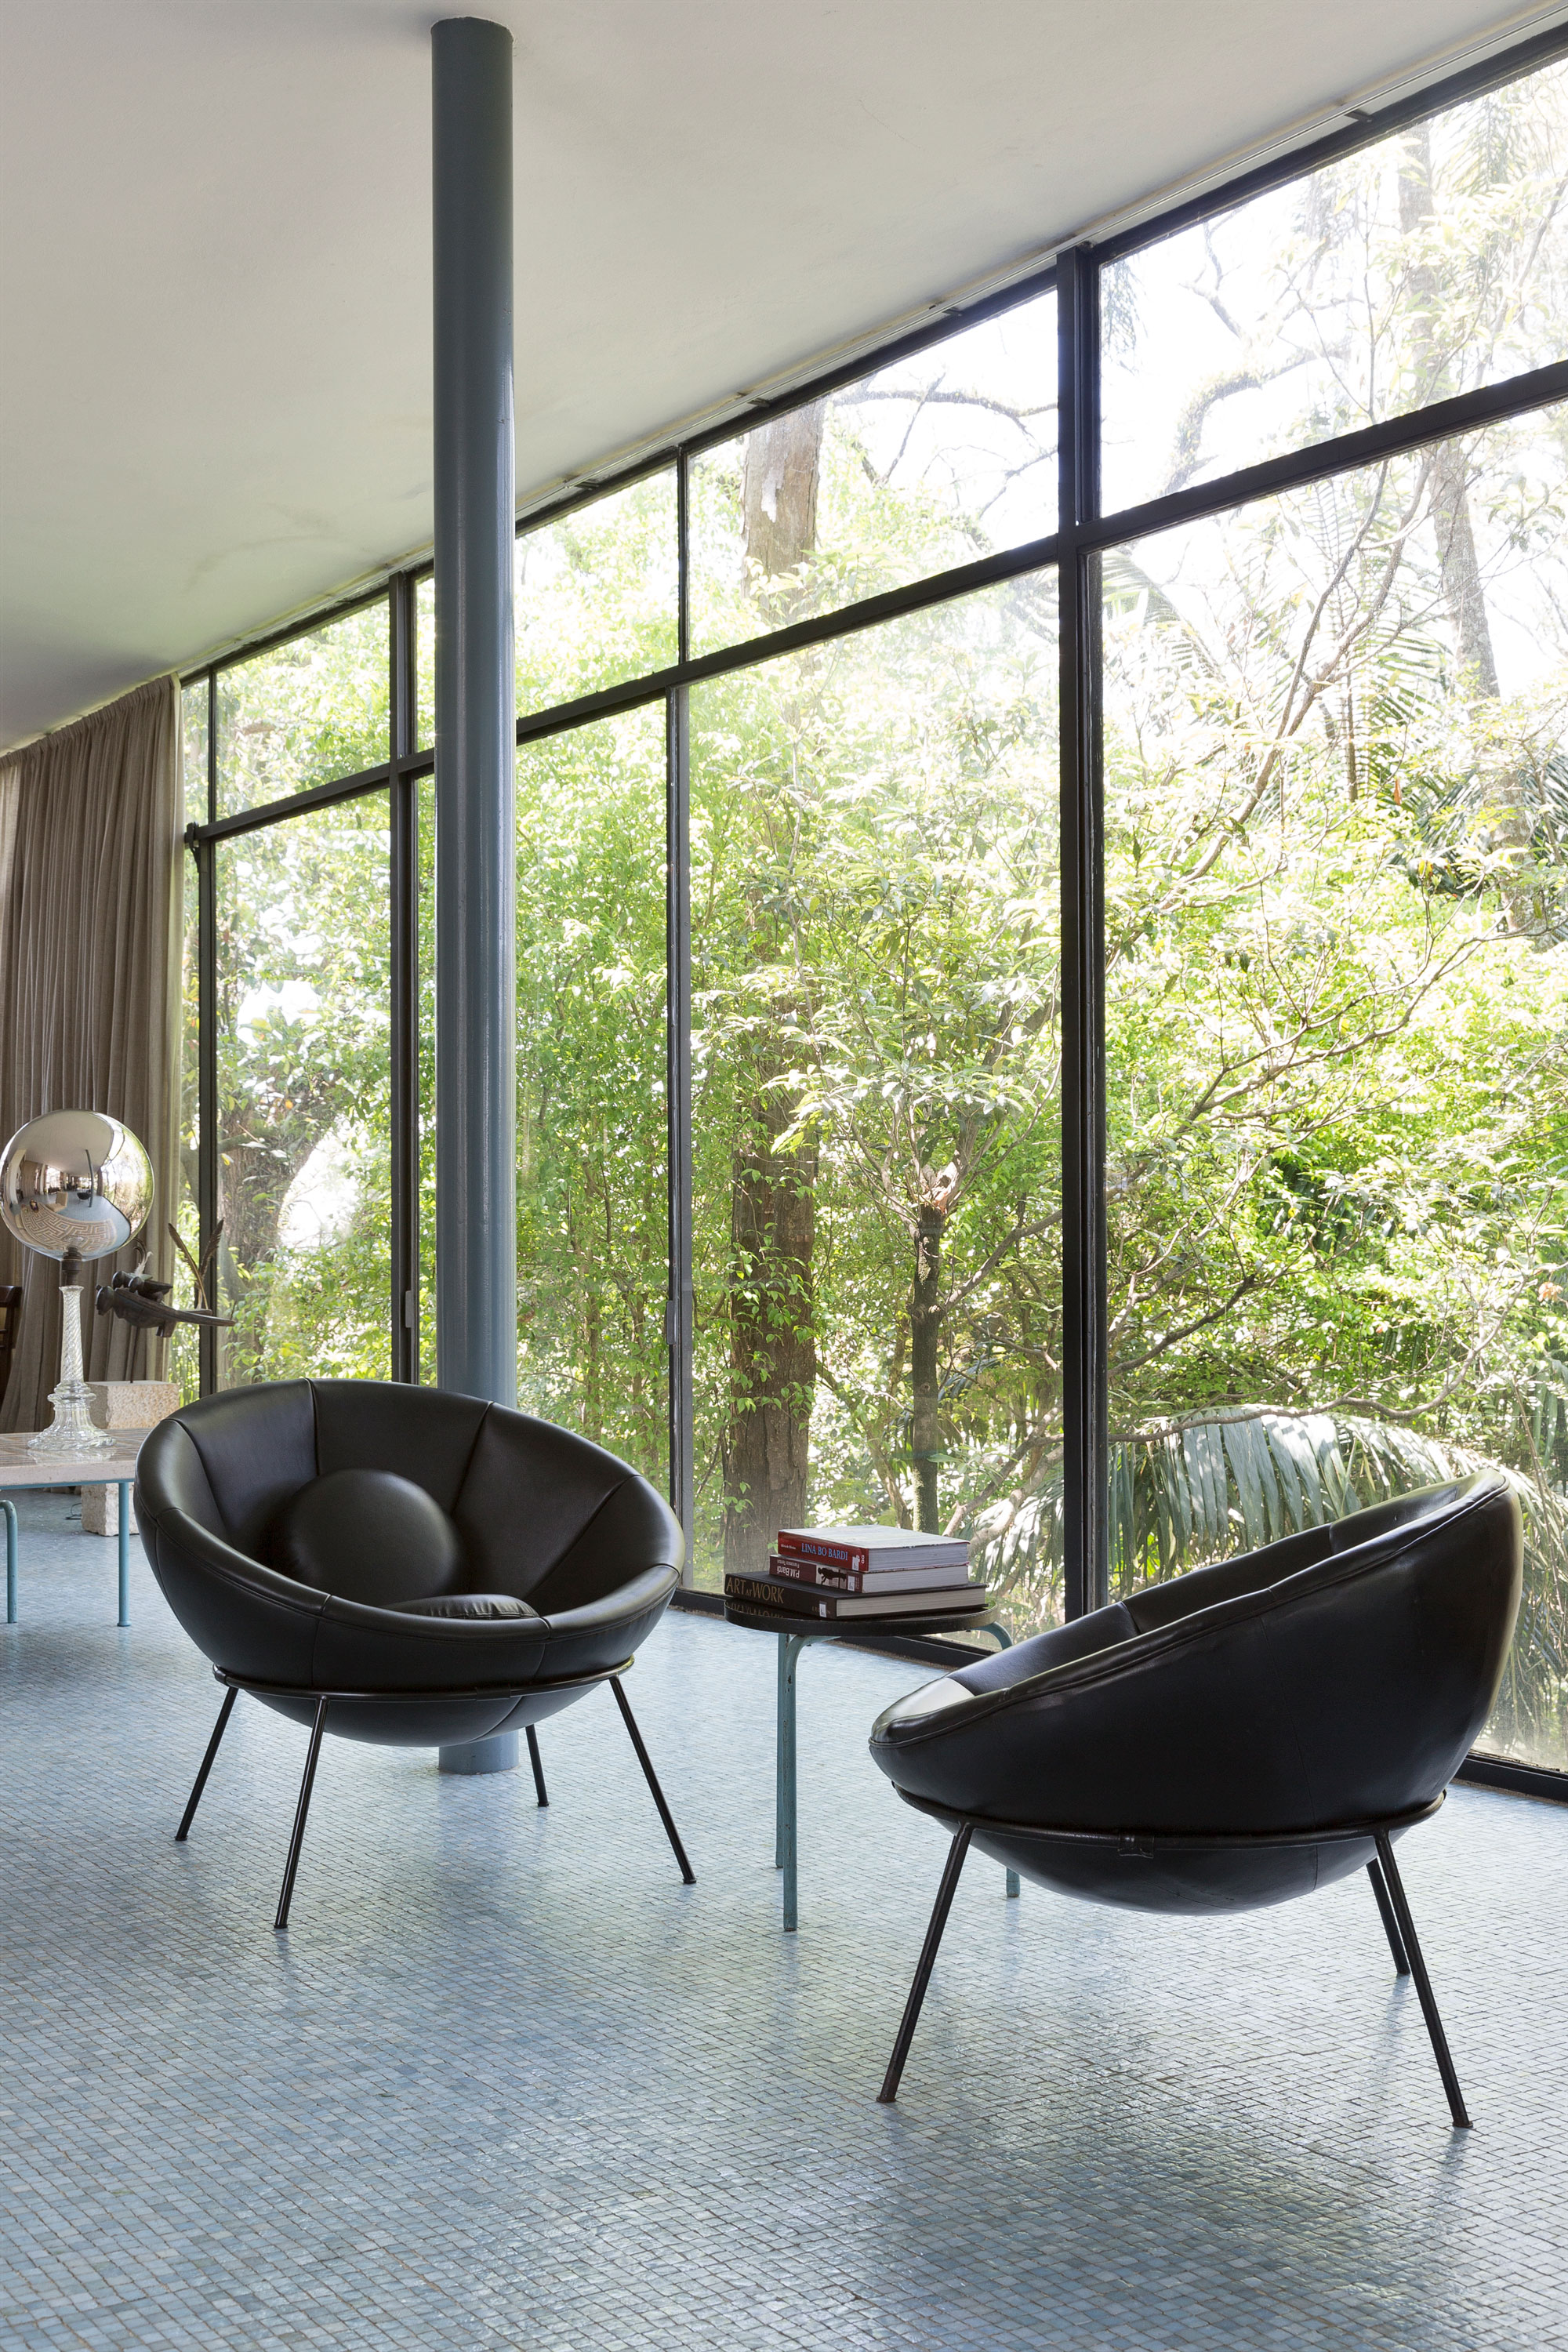 Lina bo bardi bowl chairs installed at her famed glass house for Lina bo bardi bowl